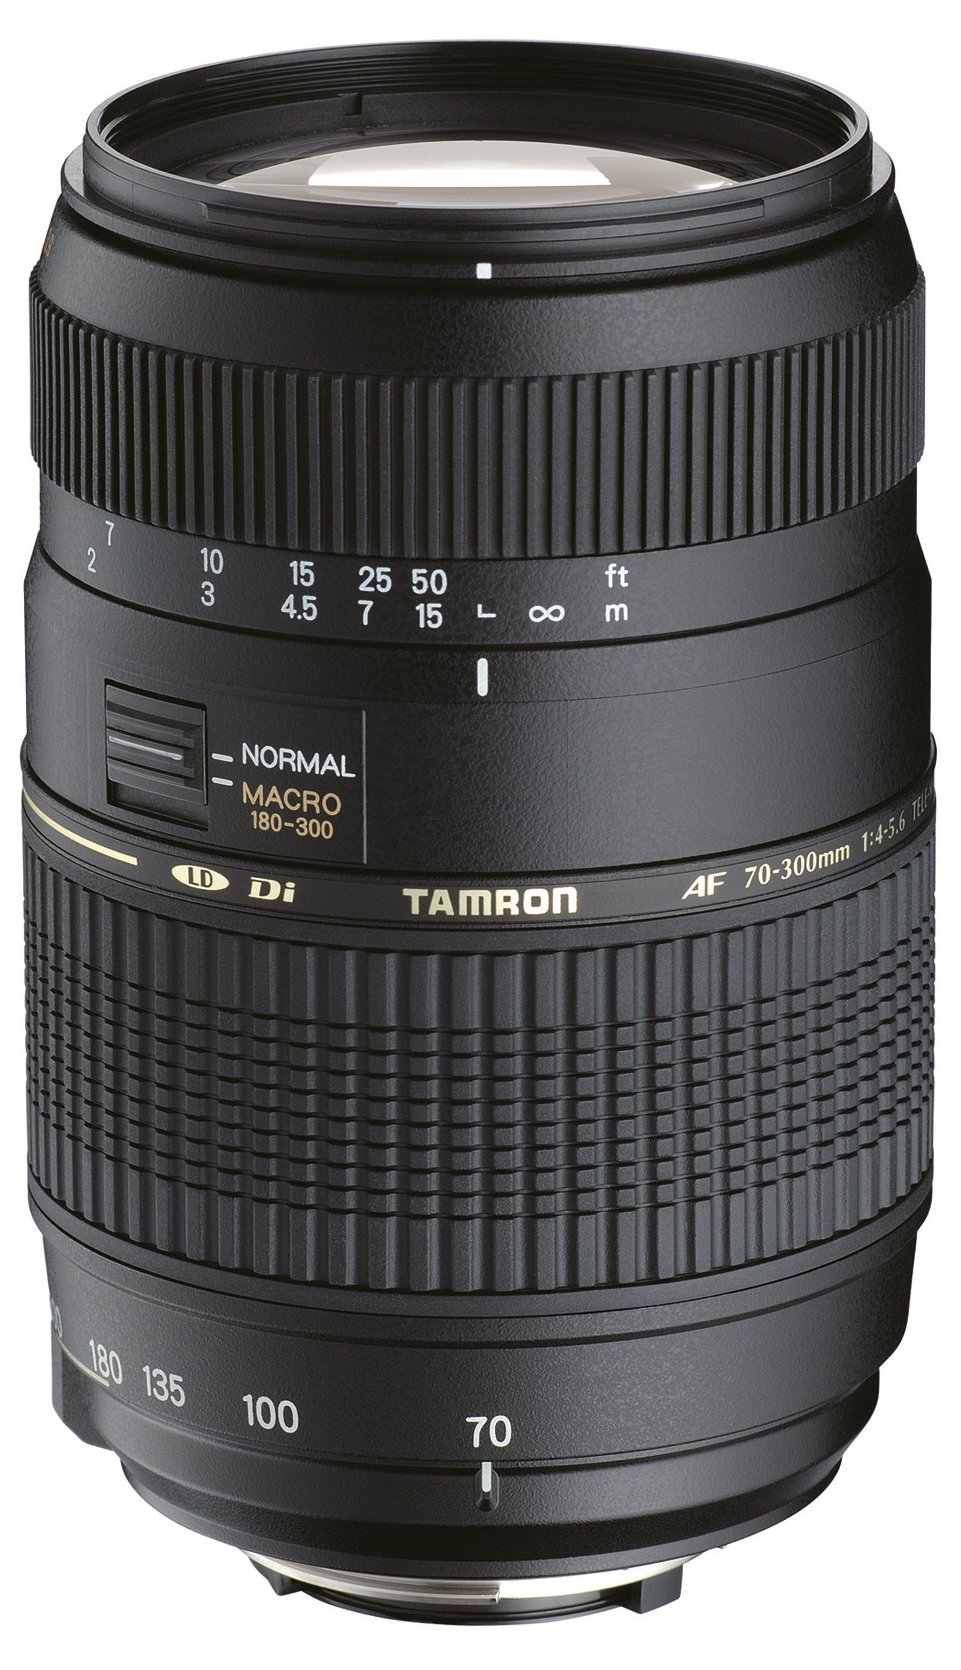 Tamron Auto Focus 70-300mm f/4.0-5.6 Di LD Macro Zoom Lens with Built in Motor for Nikon Digital SLR (Model A17NII) by Tamron